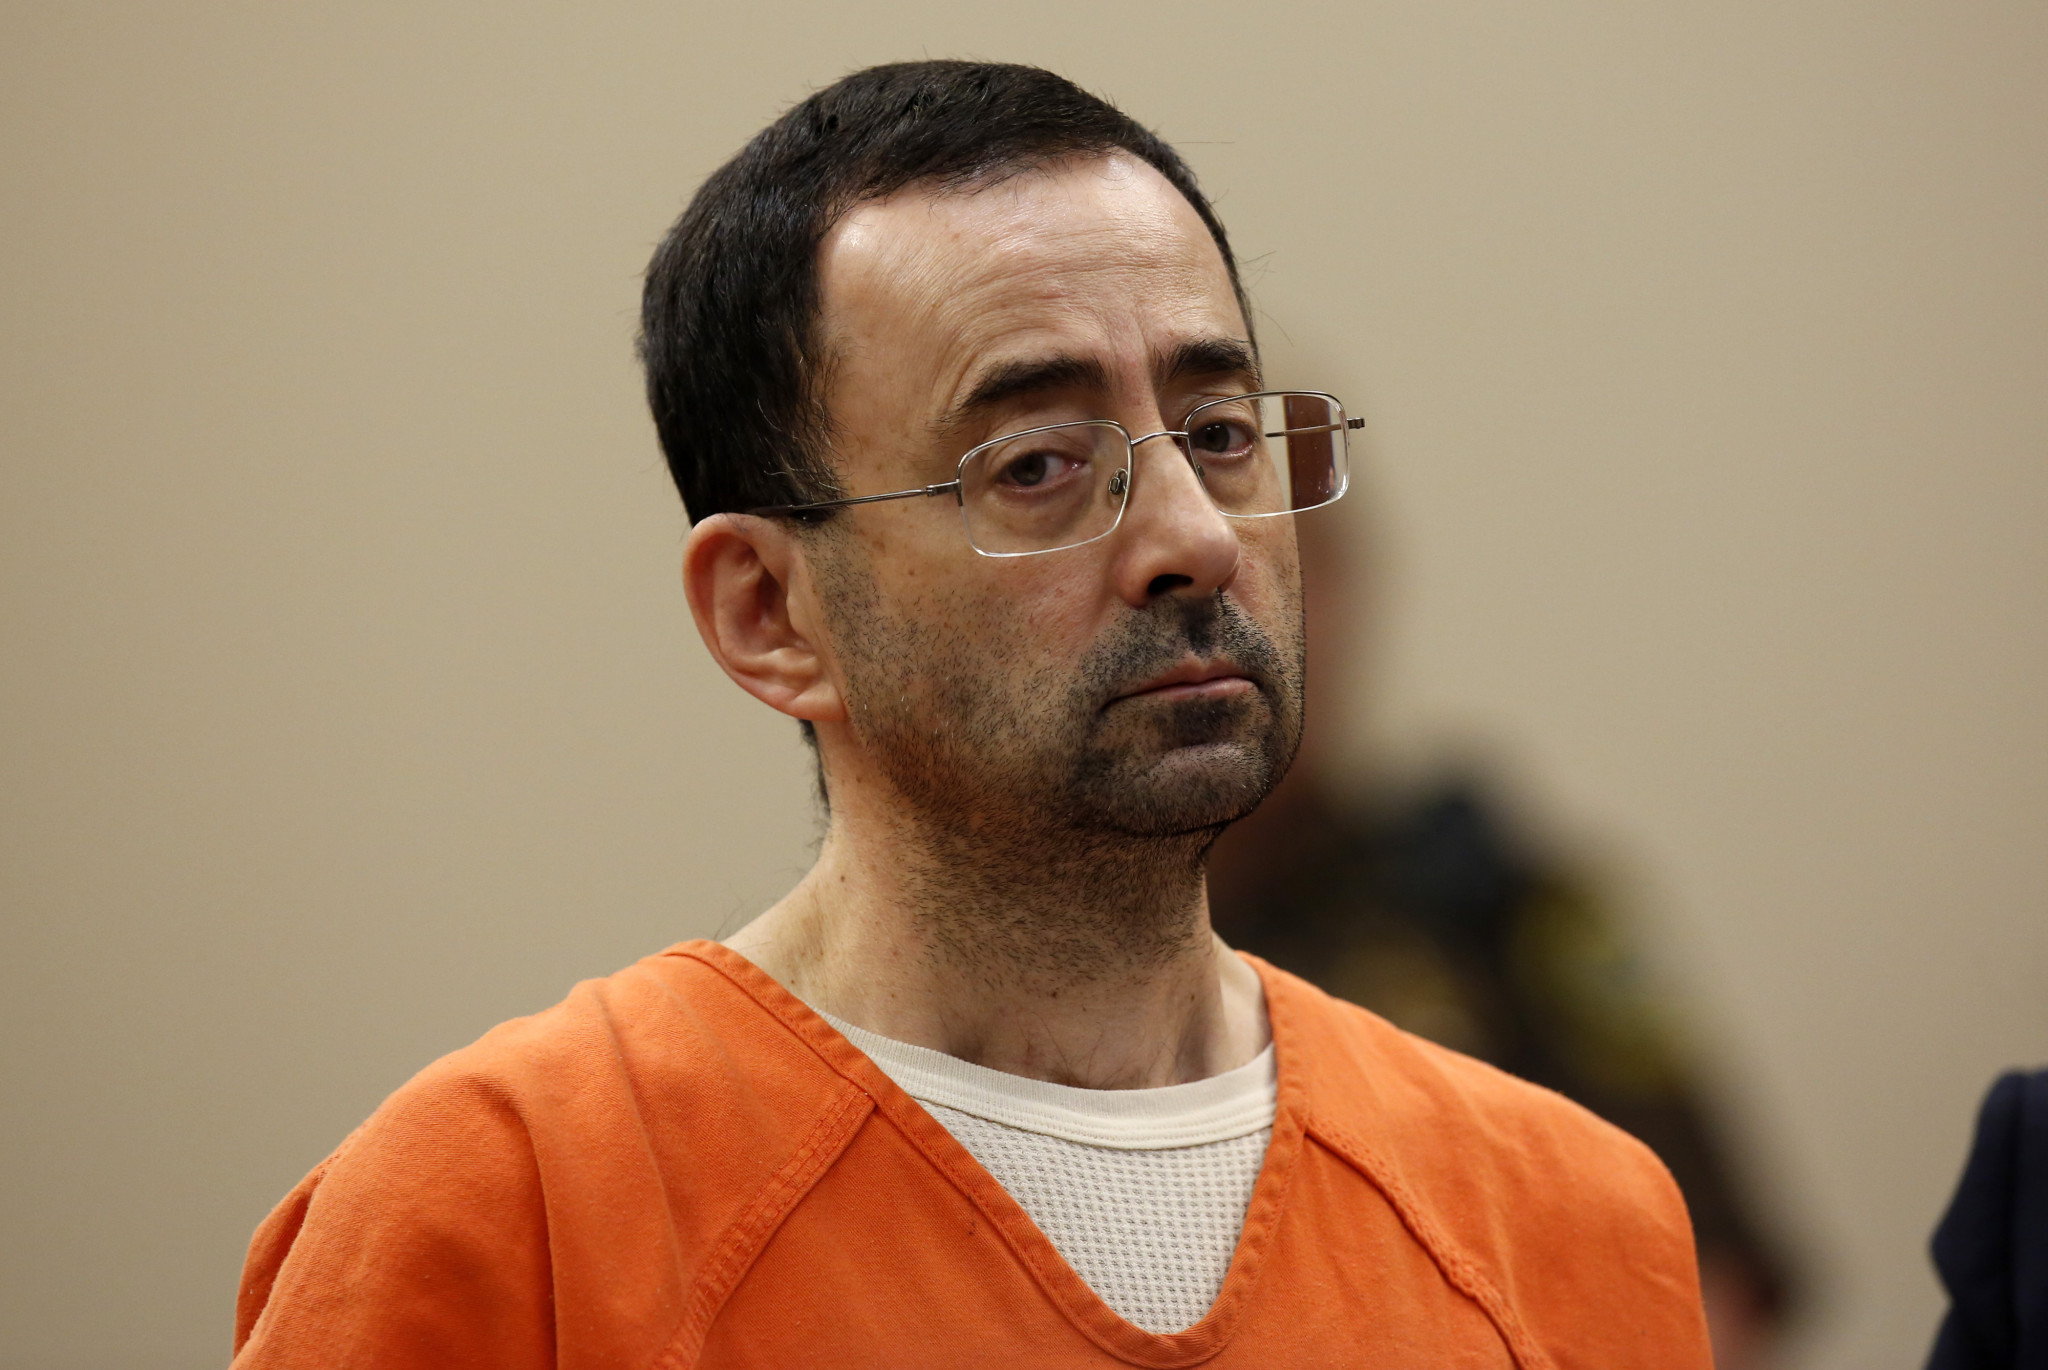 Former USA Gymnastics team doctor facing 25 years in prison after pleading guilty to sexual assault charges